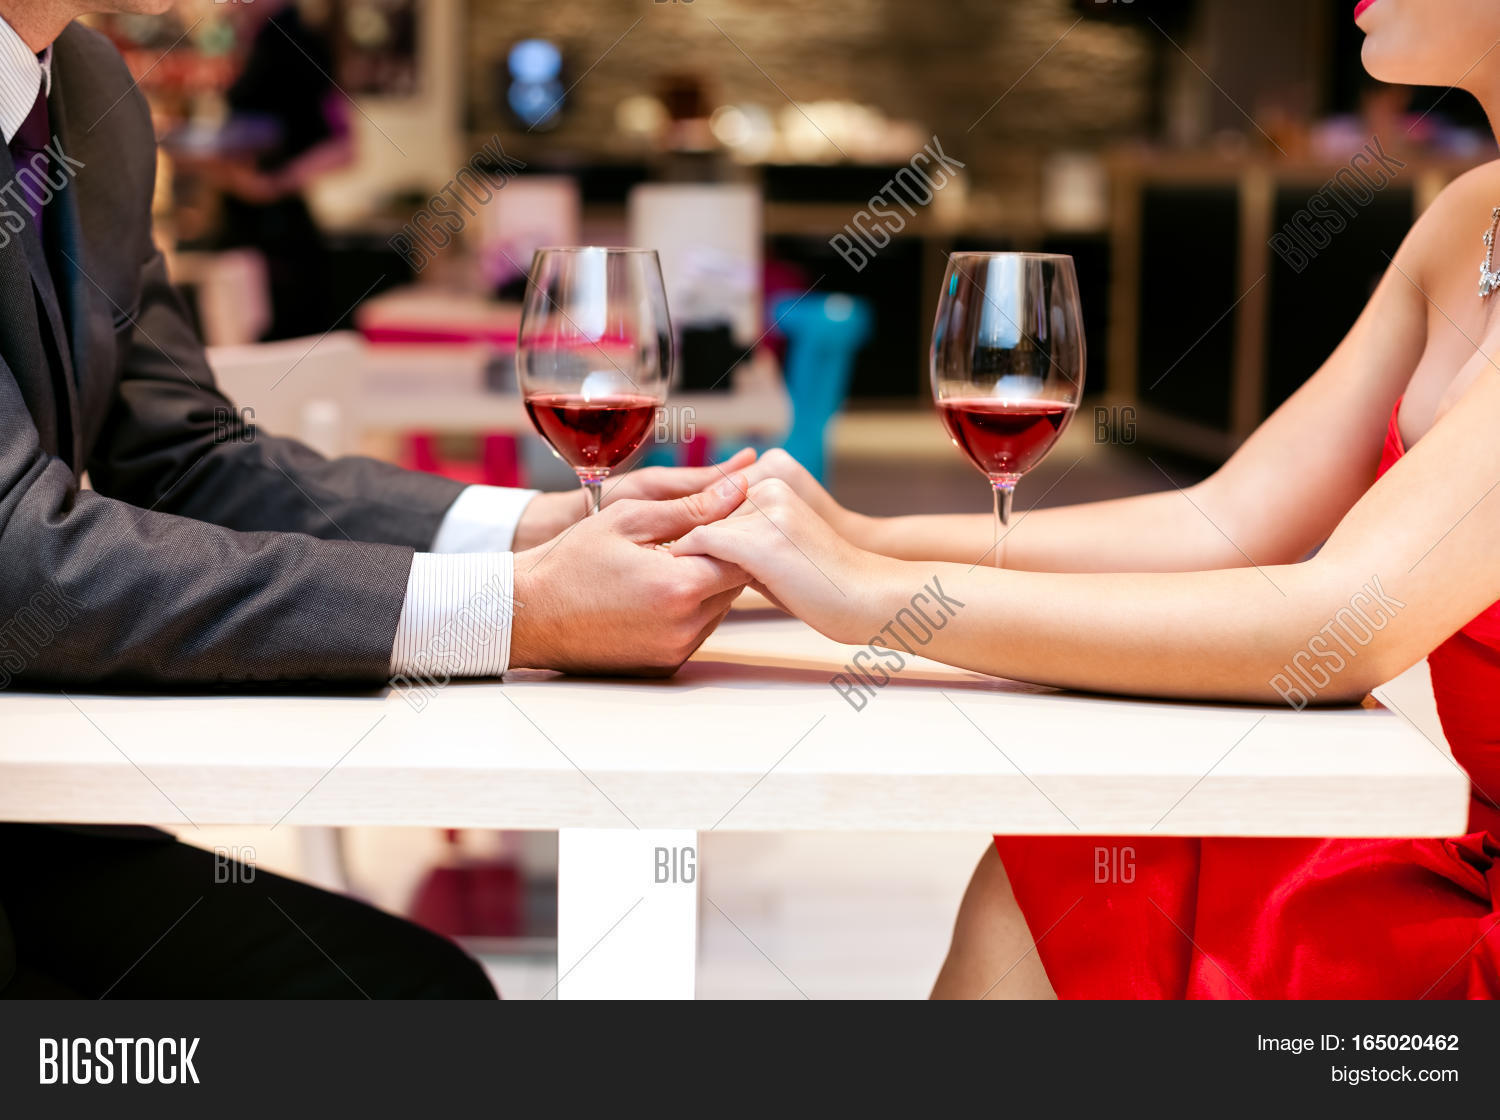 Dinner dating site